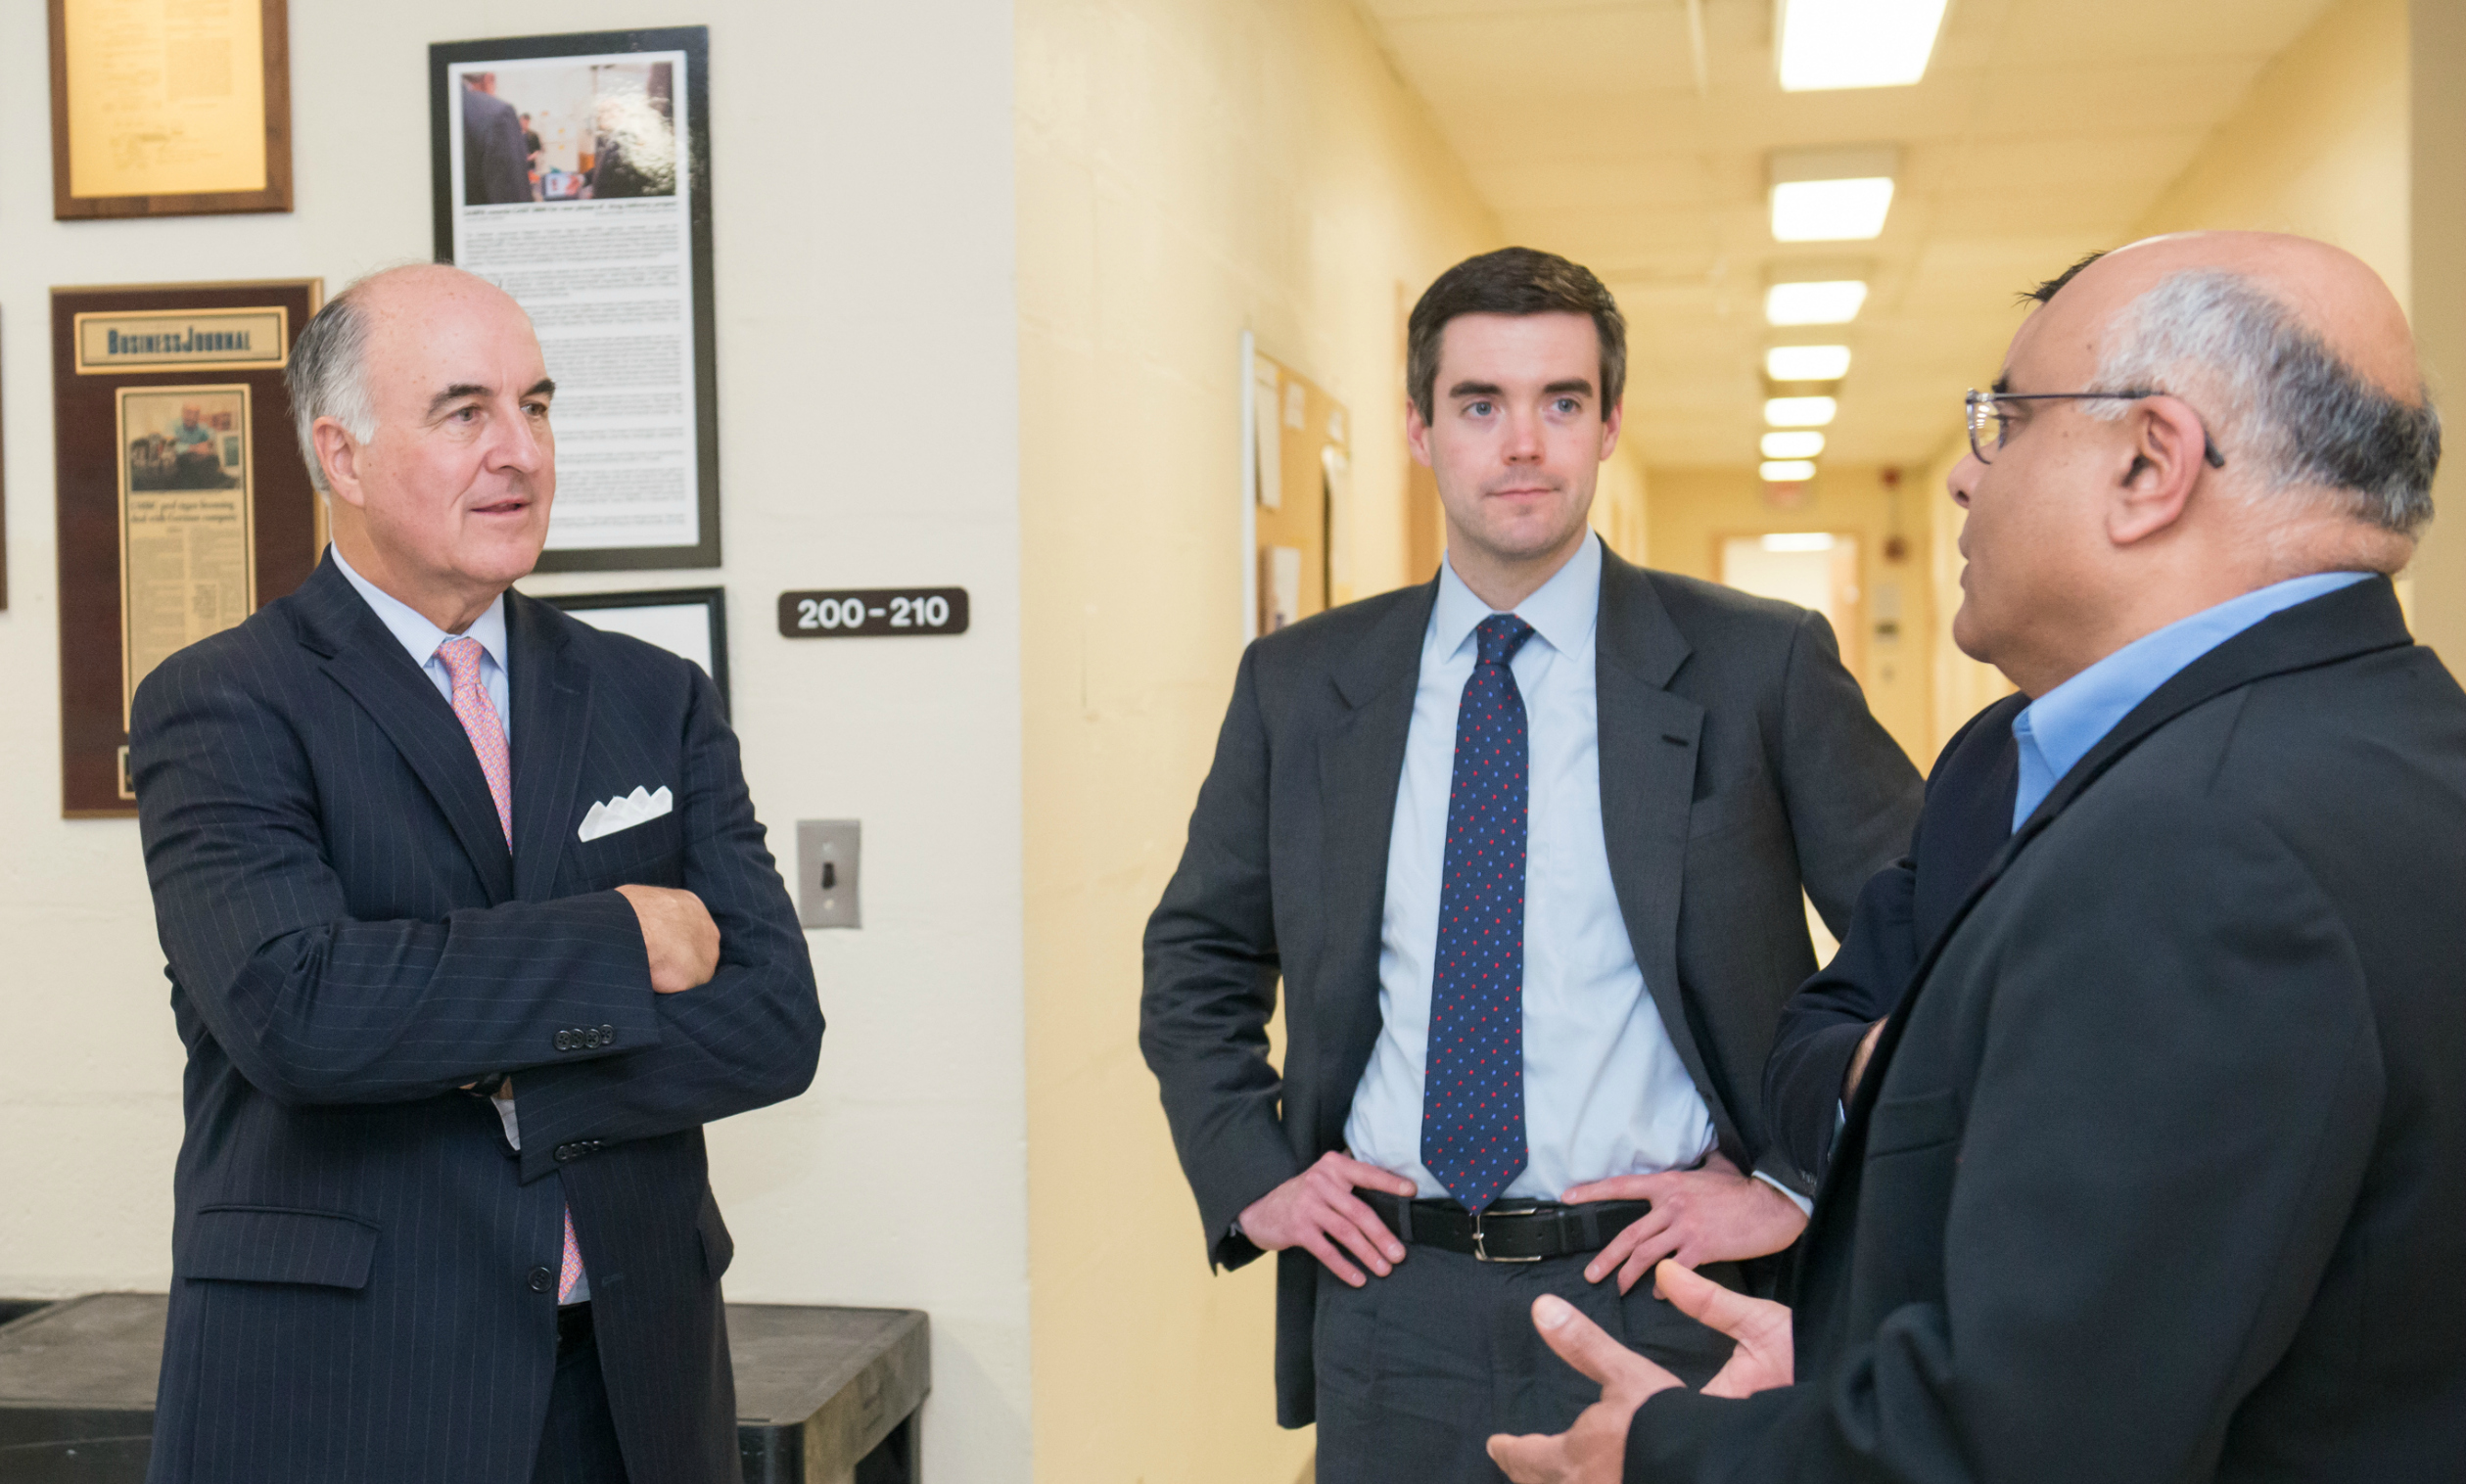 Maryland Sec. of Commerce Mike Gill focuses on growth of UMBC research during campus visit